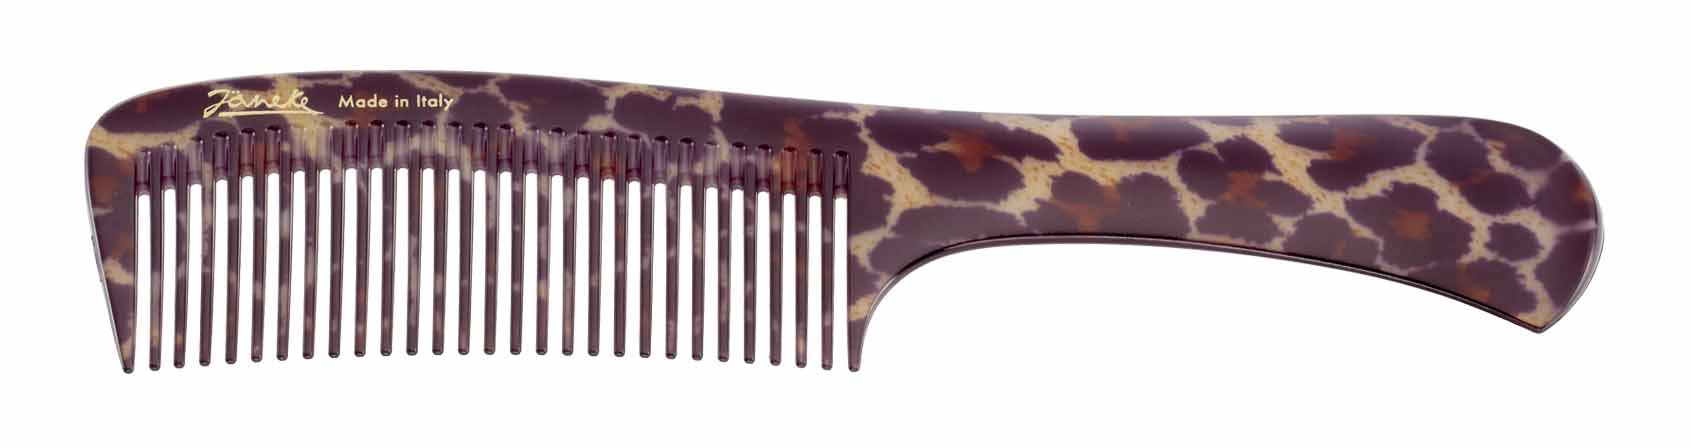 Spotted handle comb for hair colour application Cod. 80825V MAC